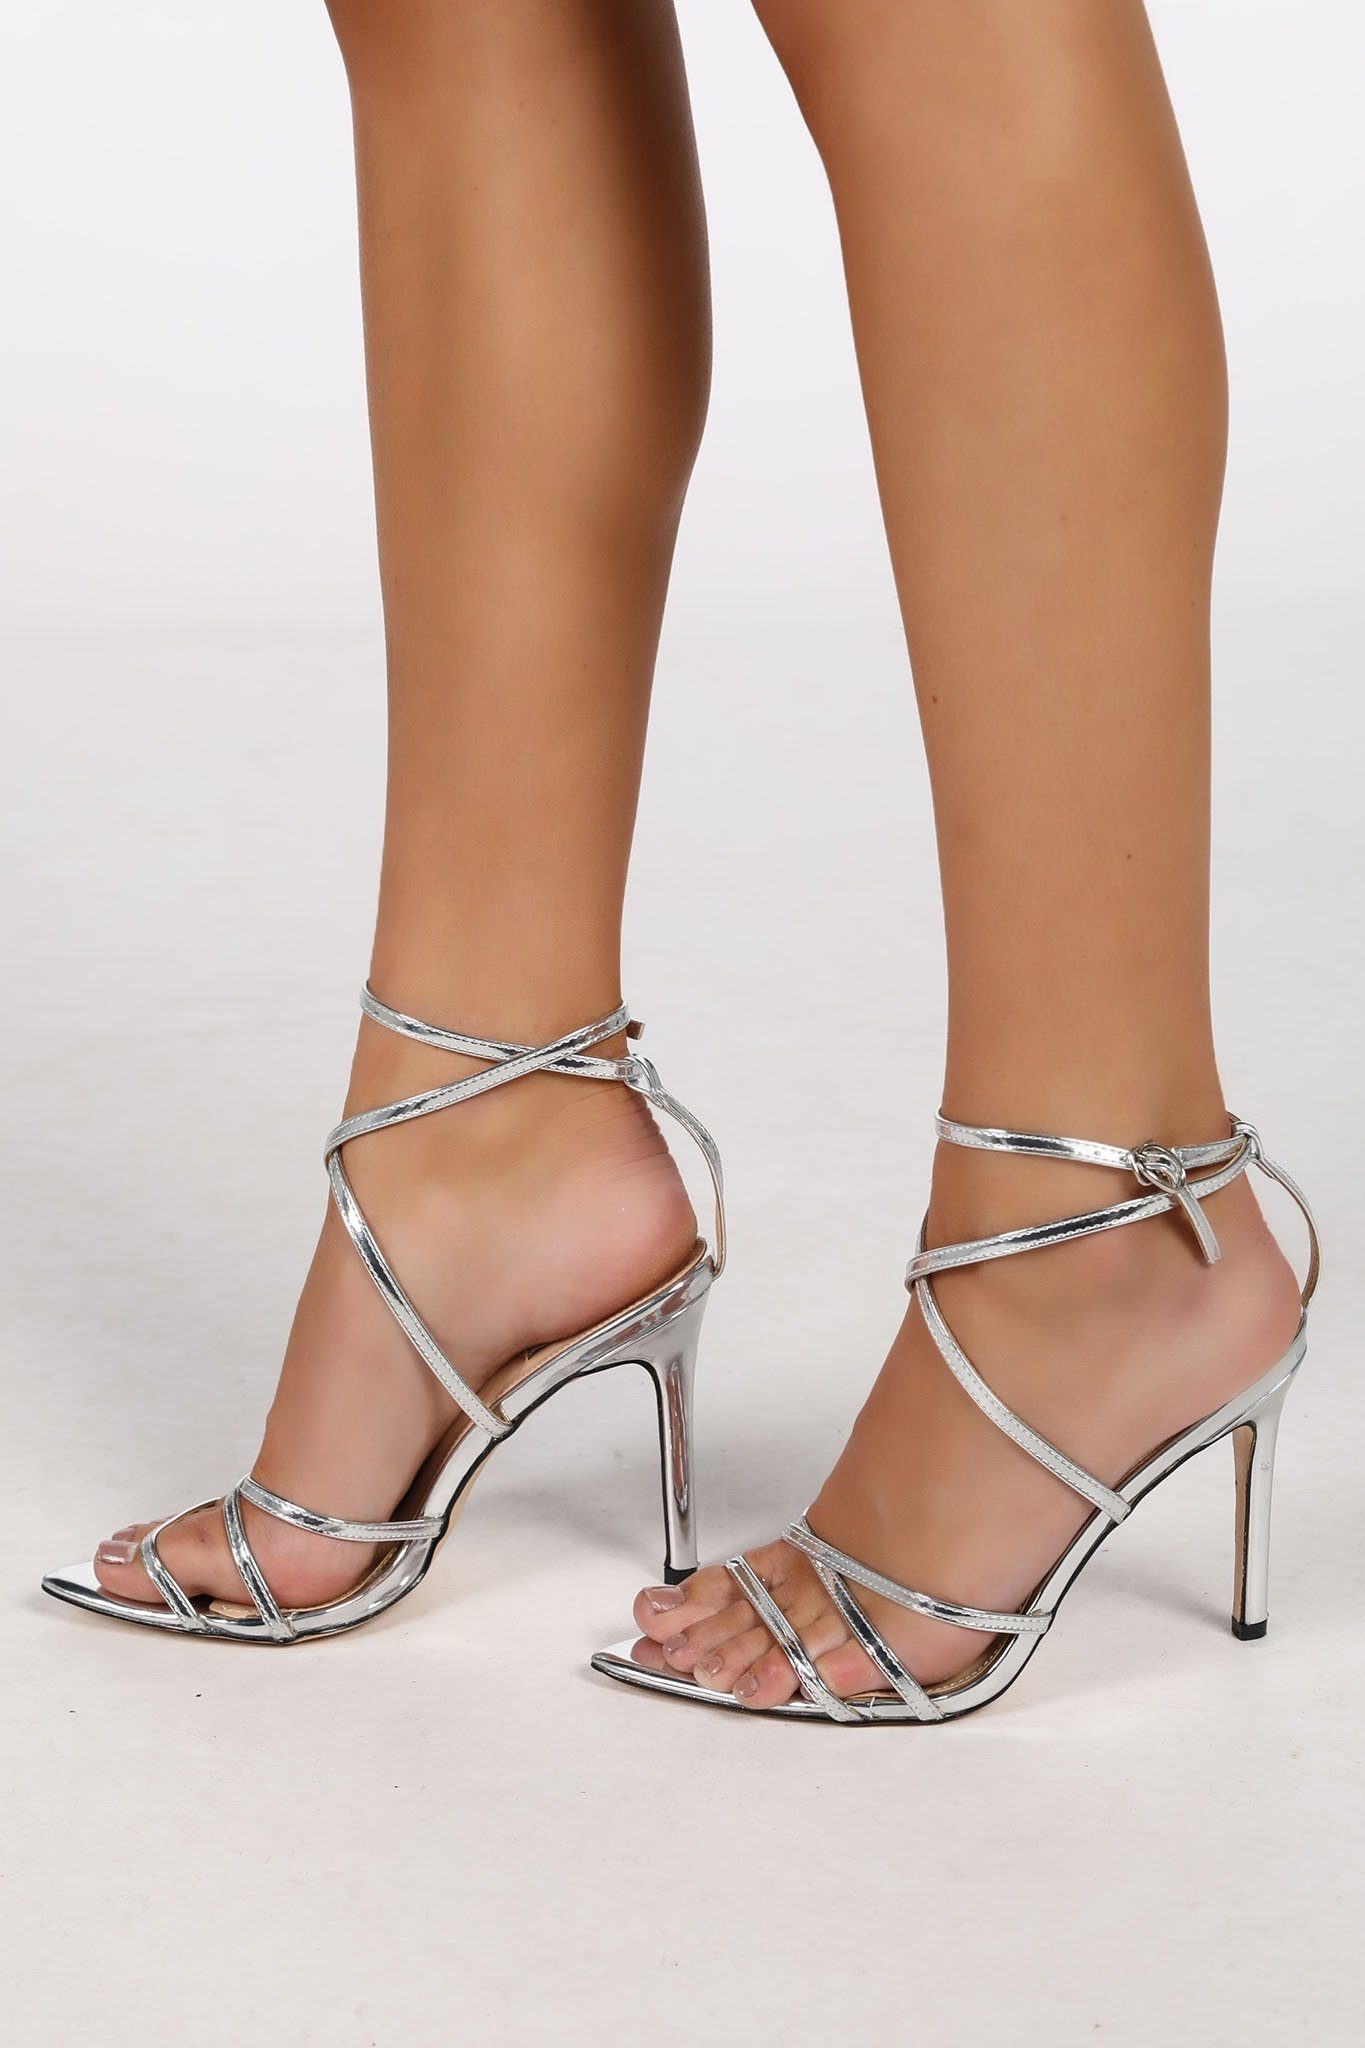 Strappy High Heel Sandals Silver